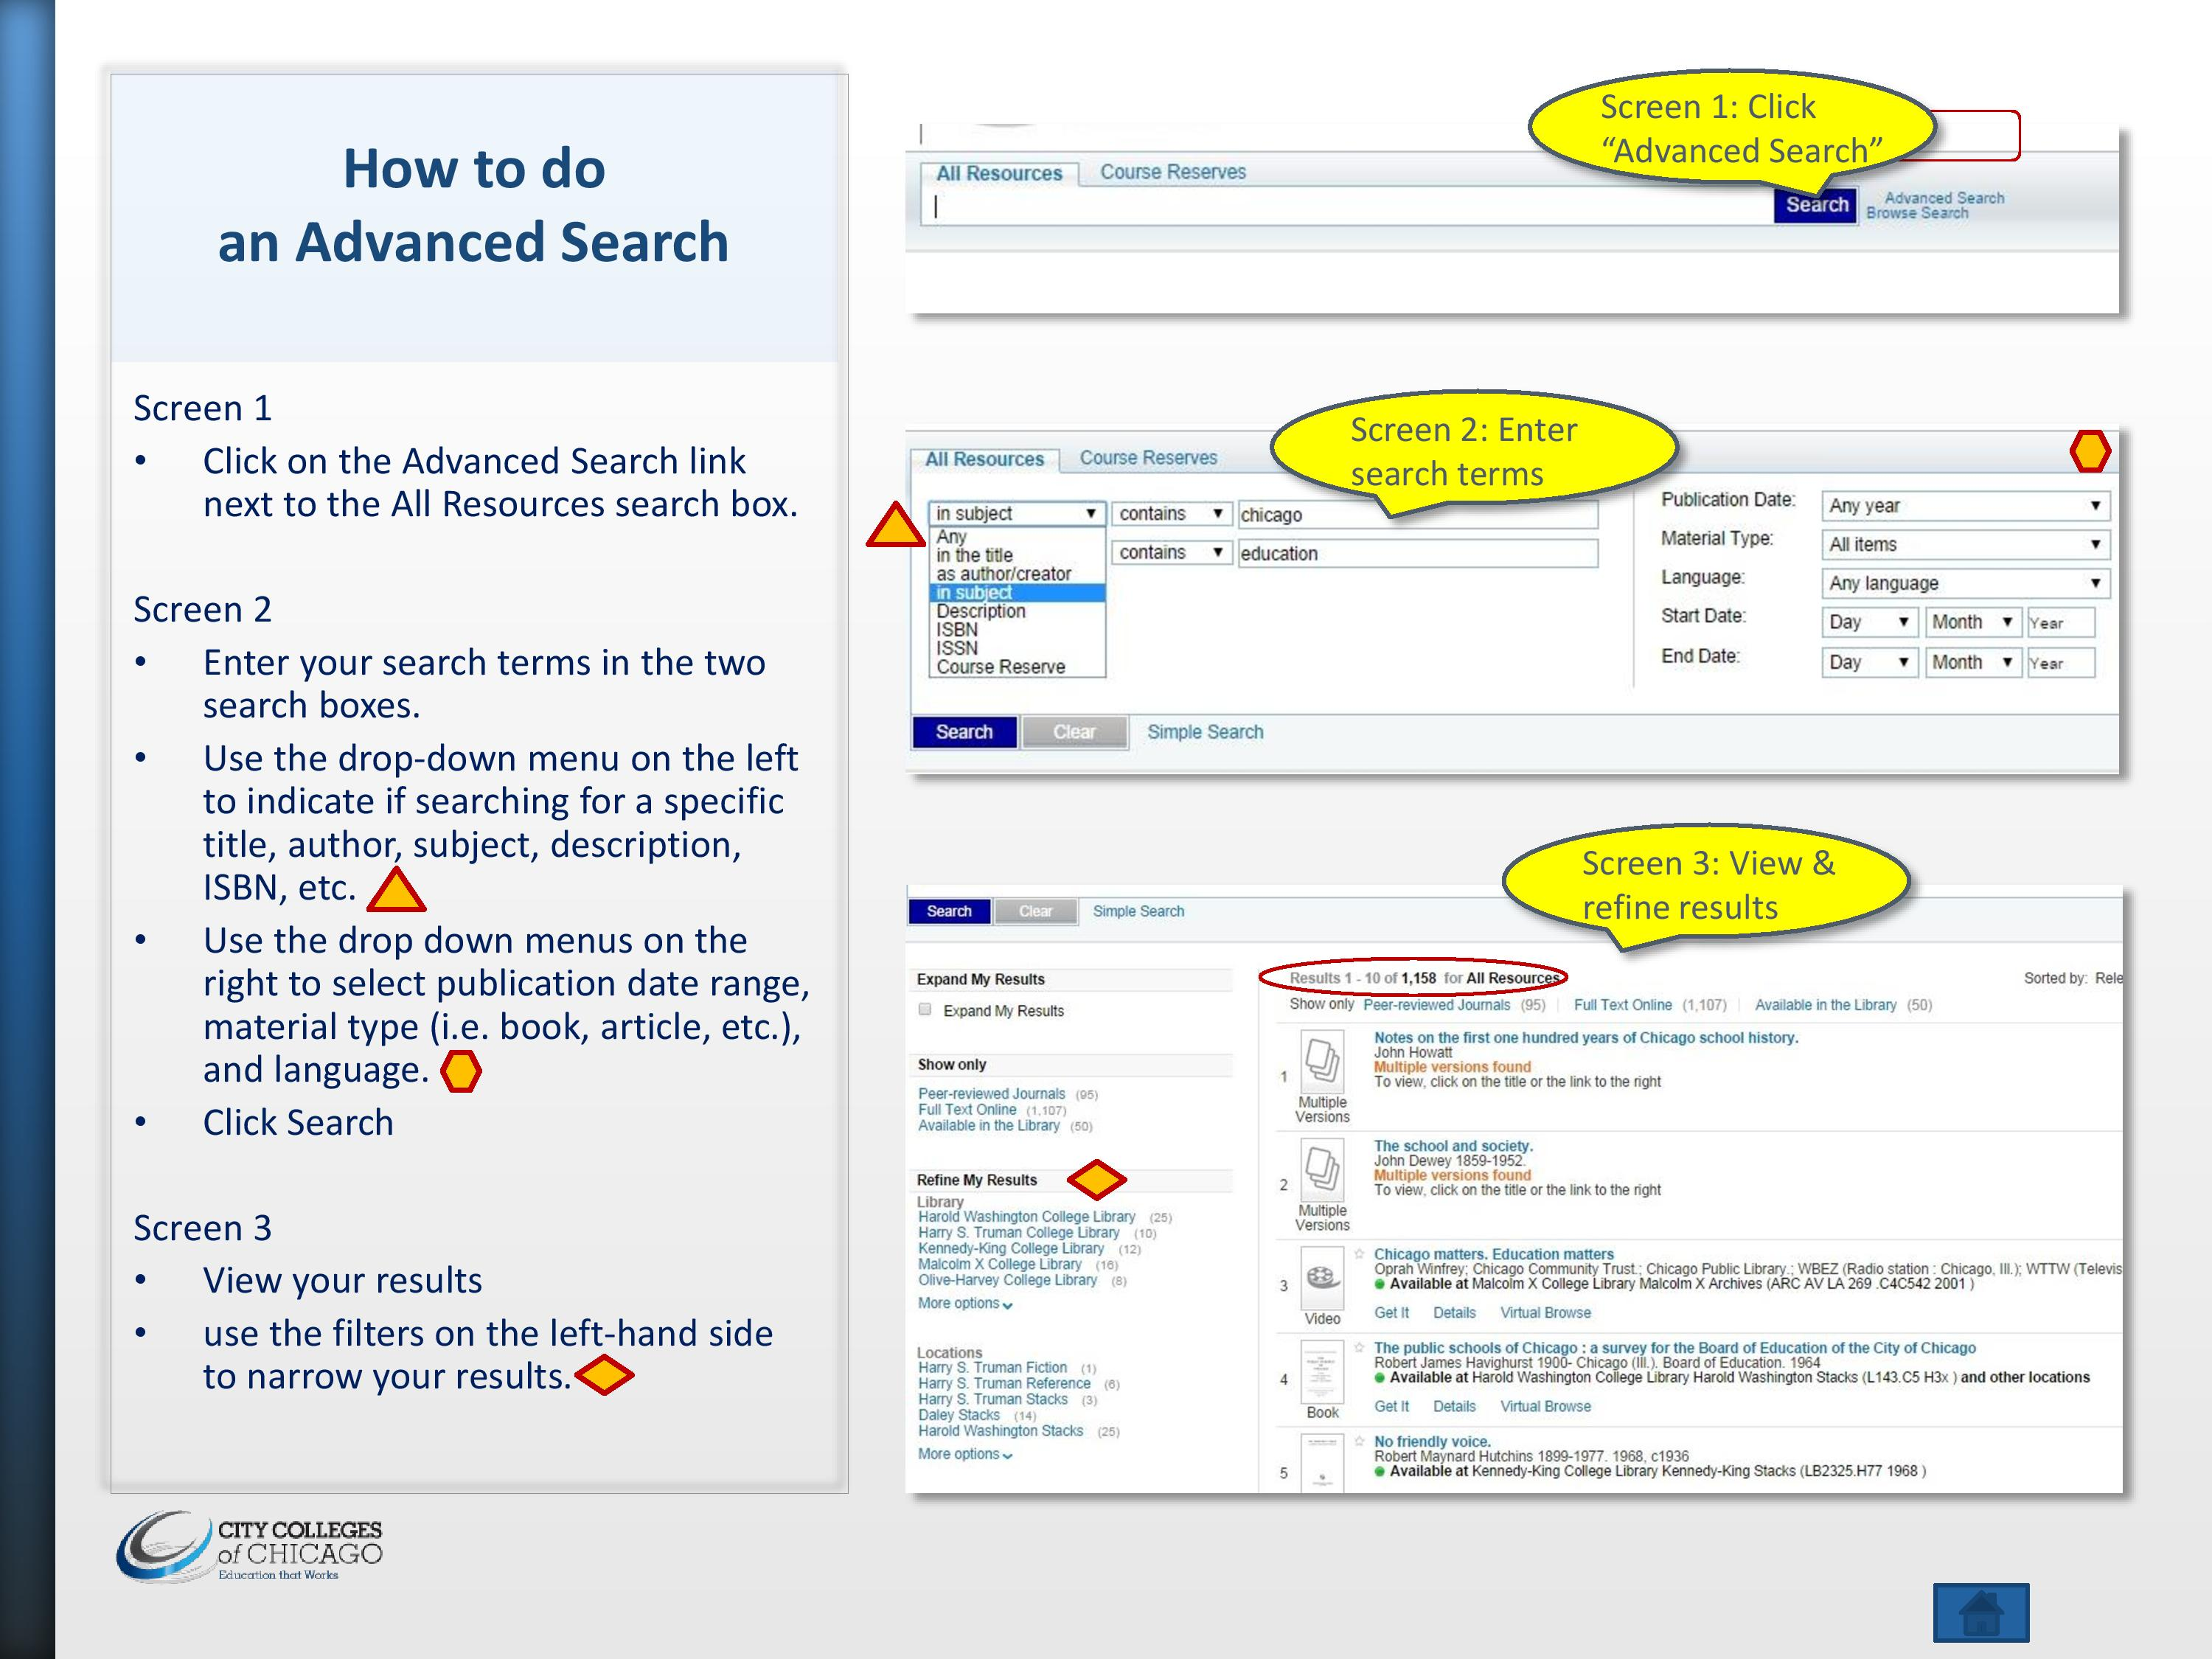 The image contains screenshots of the advanced search feature in the library catalog.